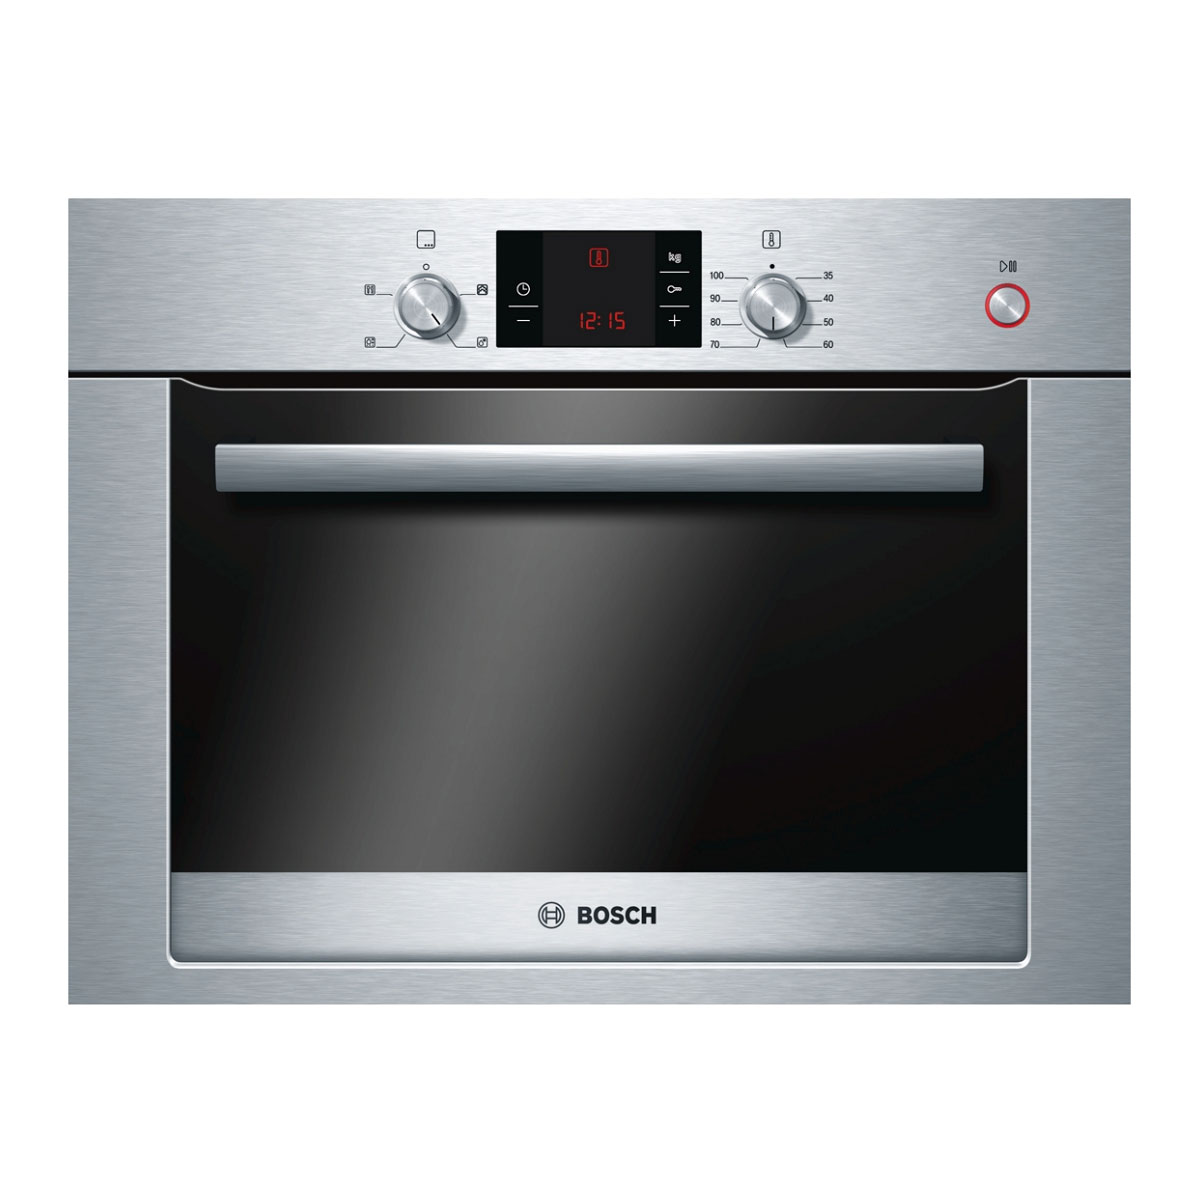 Bosch HBC24D553BBT2 Exxcel Compact Steam Oven in Stainless Steel